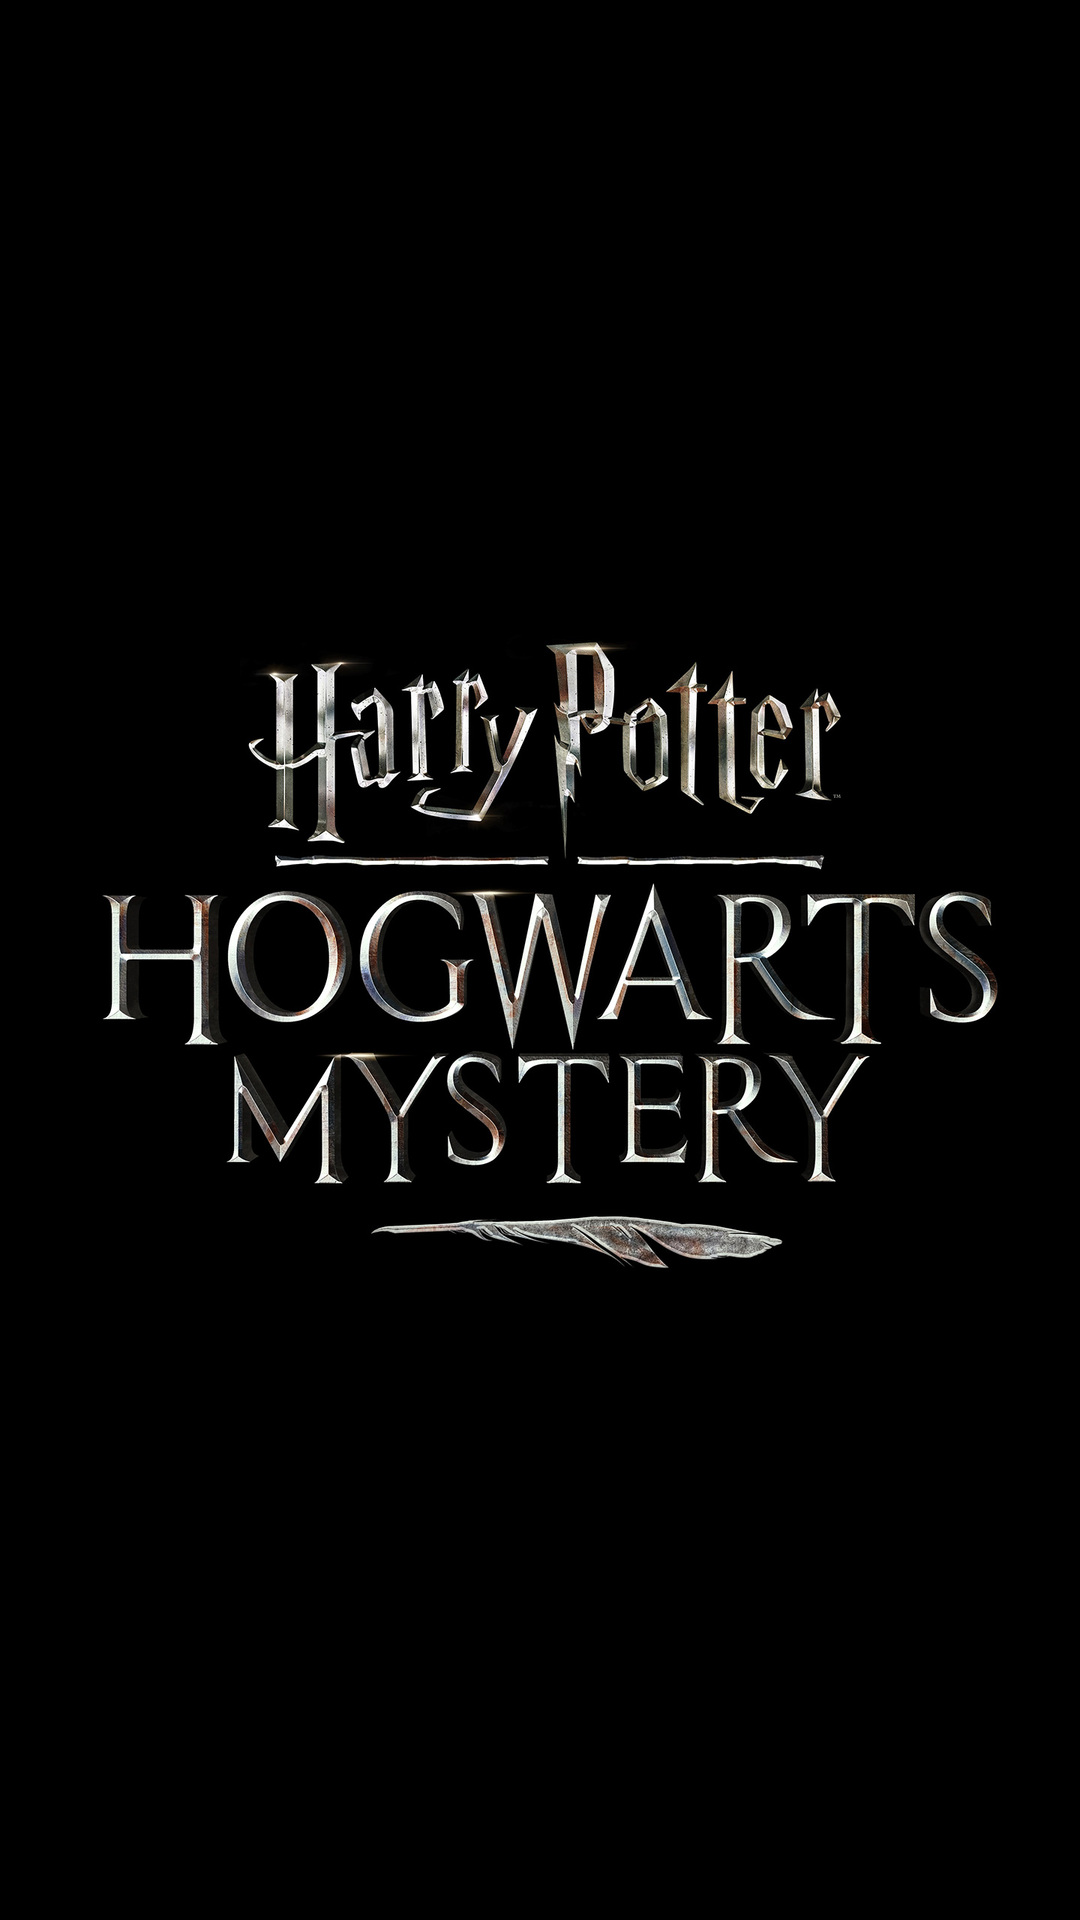 Download Wallpaper Harry Potter Iphone 5 - harry-potter-hogwarts-mystery-game-logo-gc-1080x1920  Photograph_277039.jpg